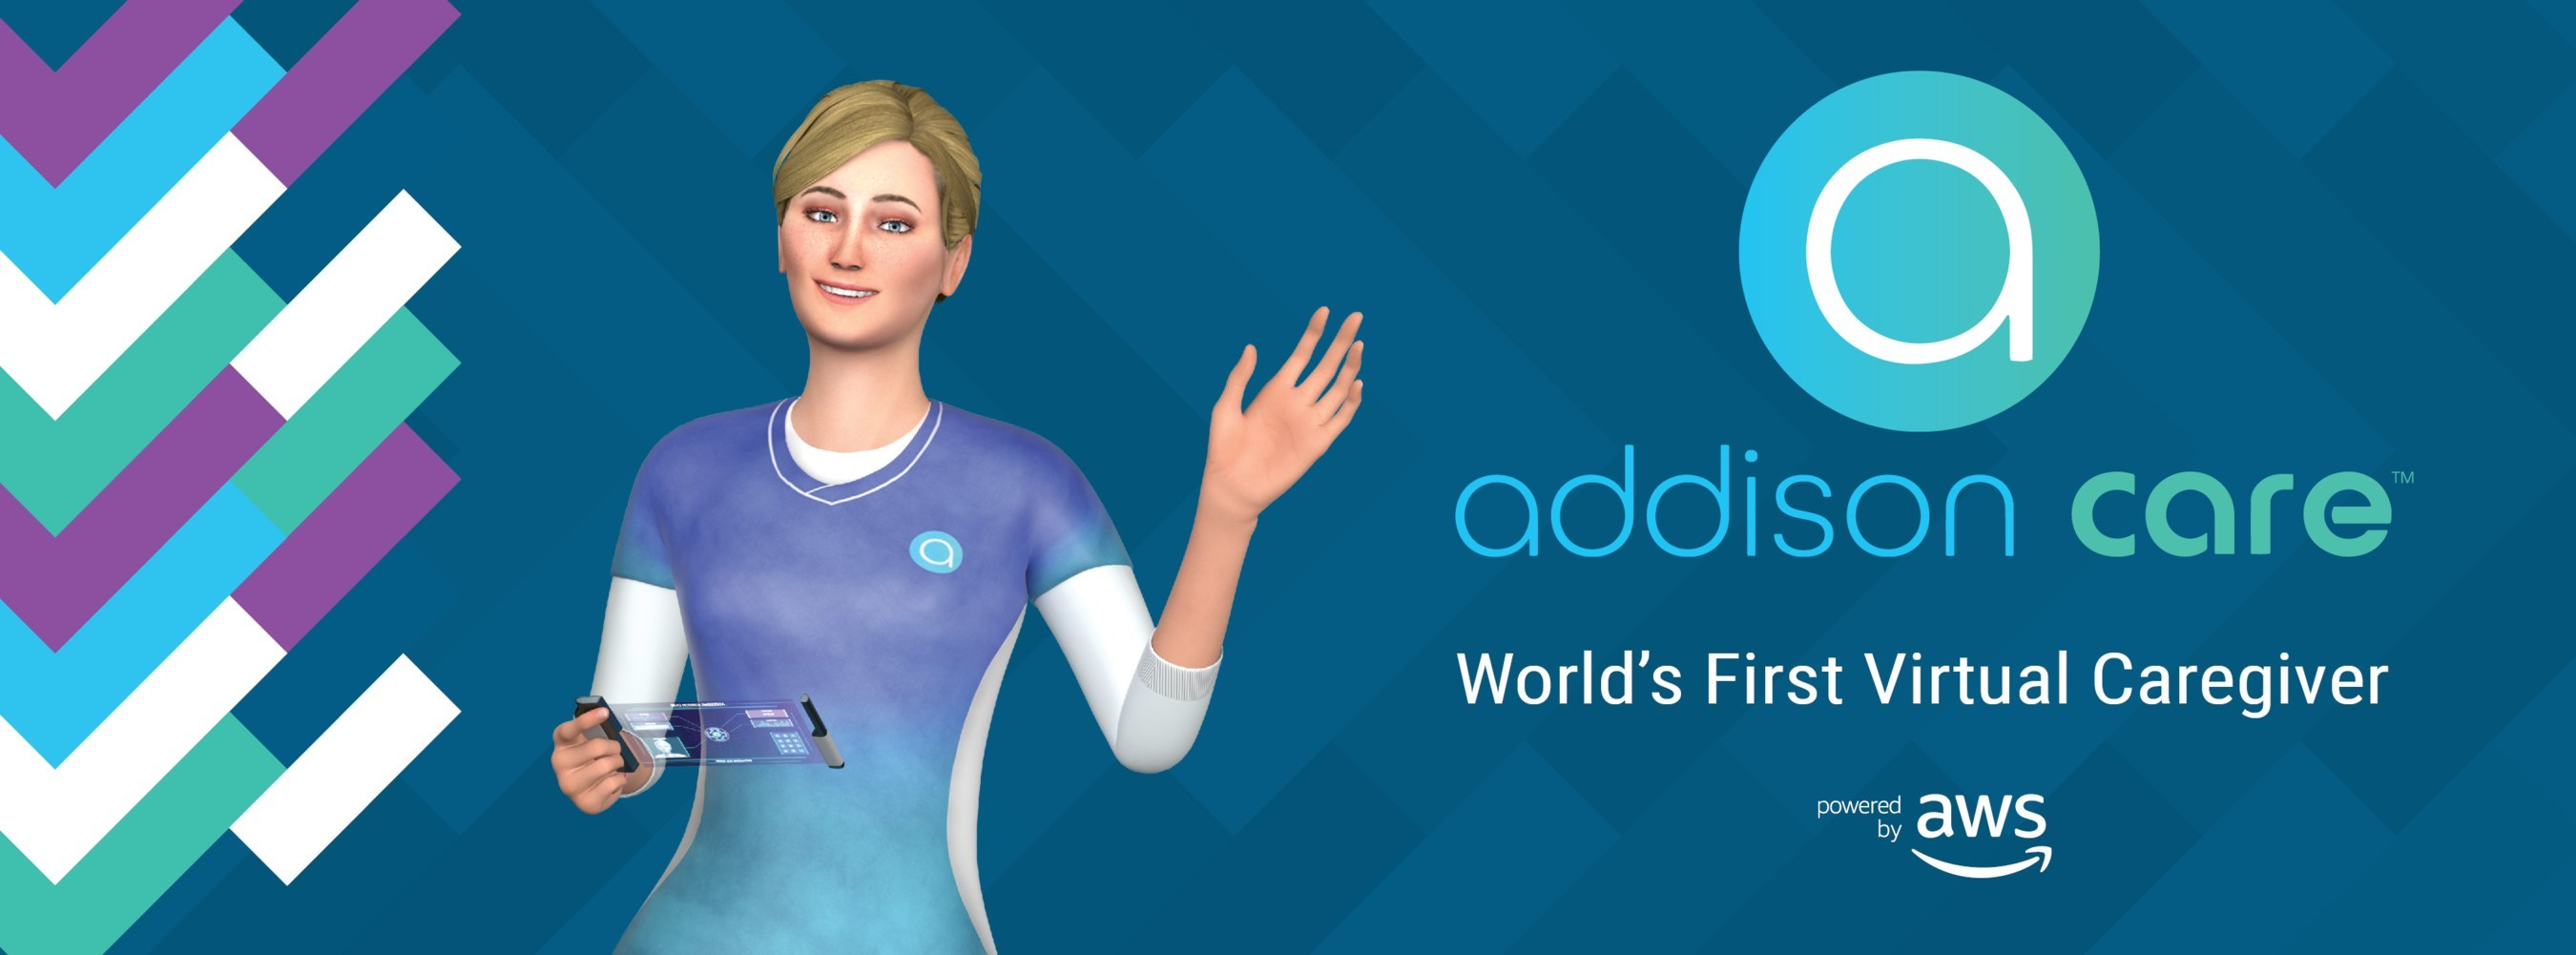 Addison, of Addison Care, the World's First Virtual Caregiver is debuting at CES 2019.